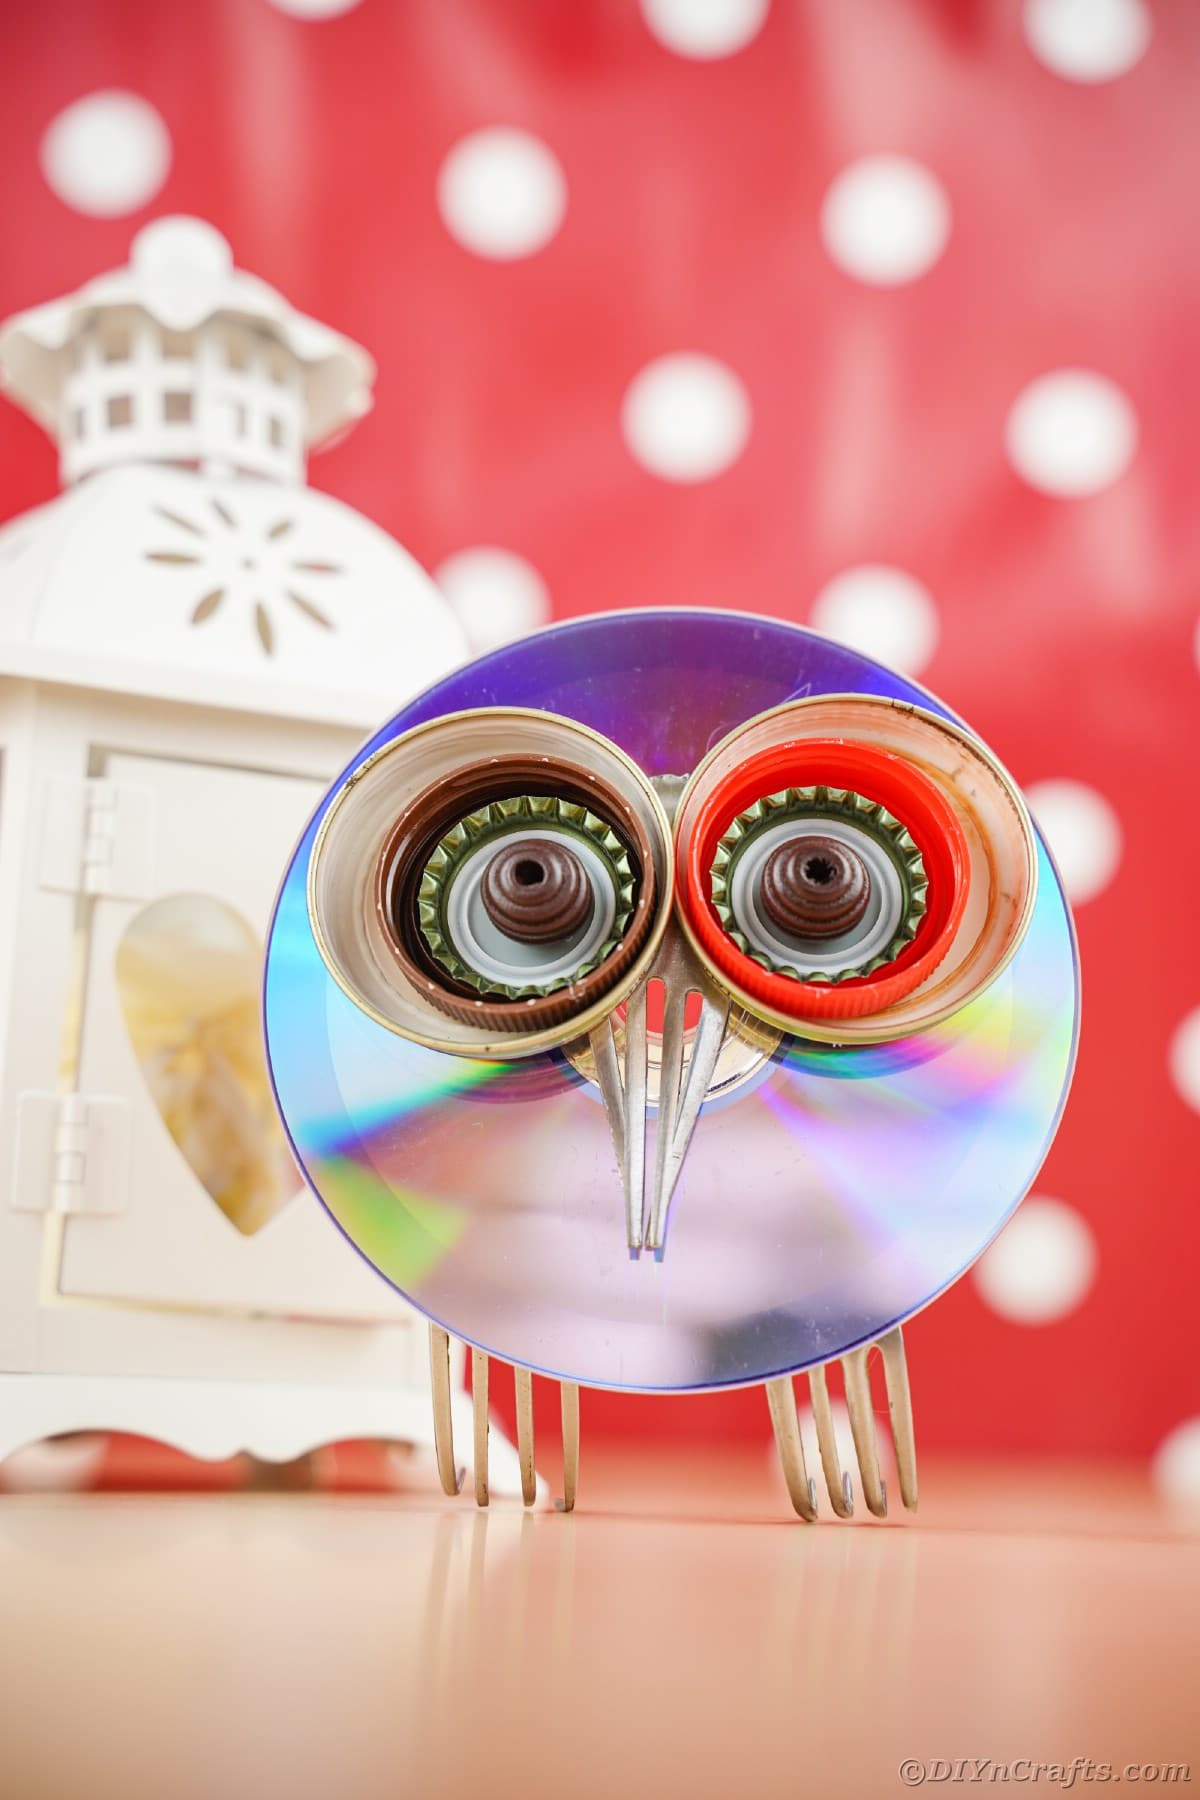 CD owl sitting on table